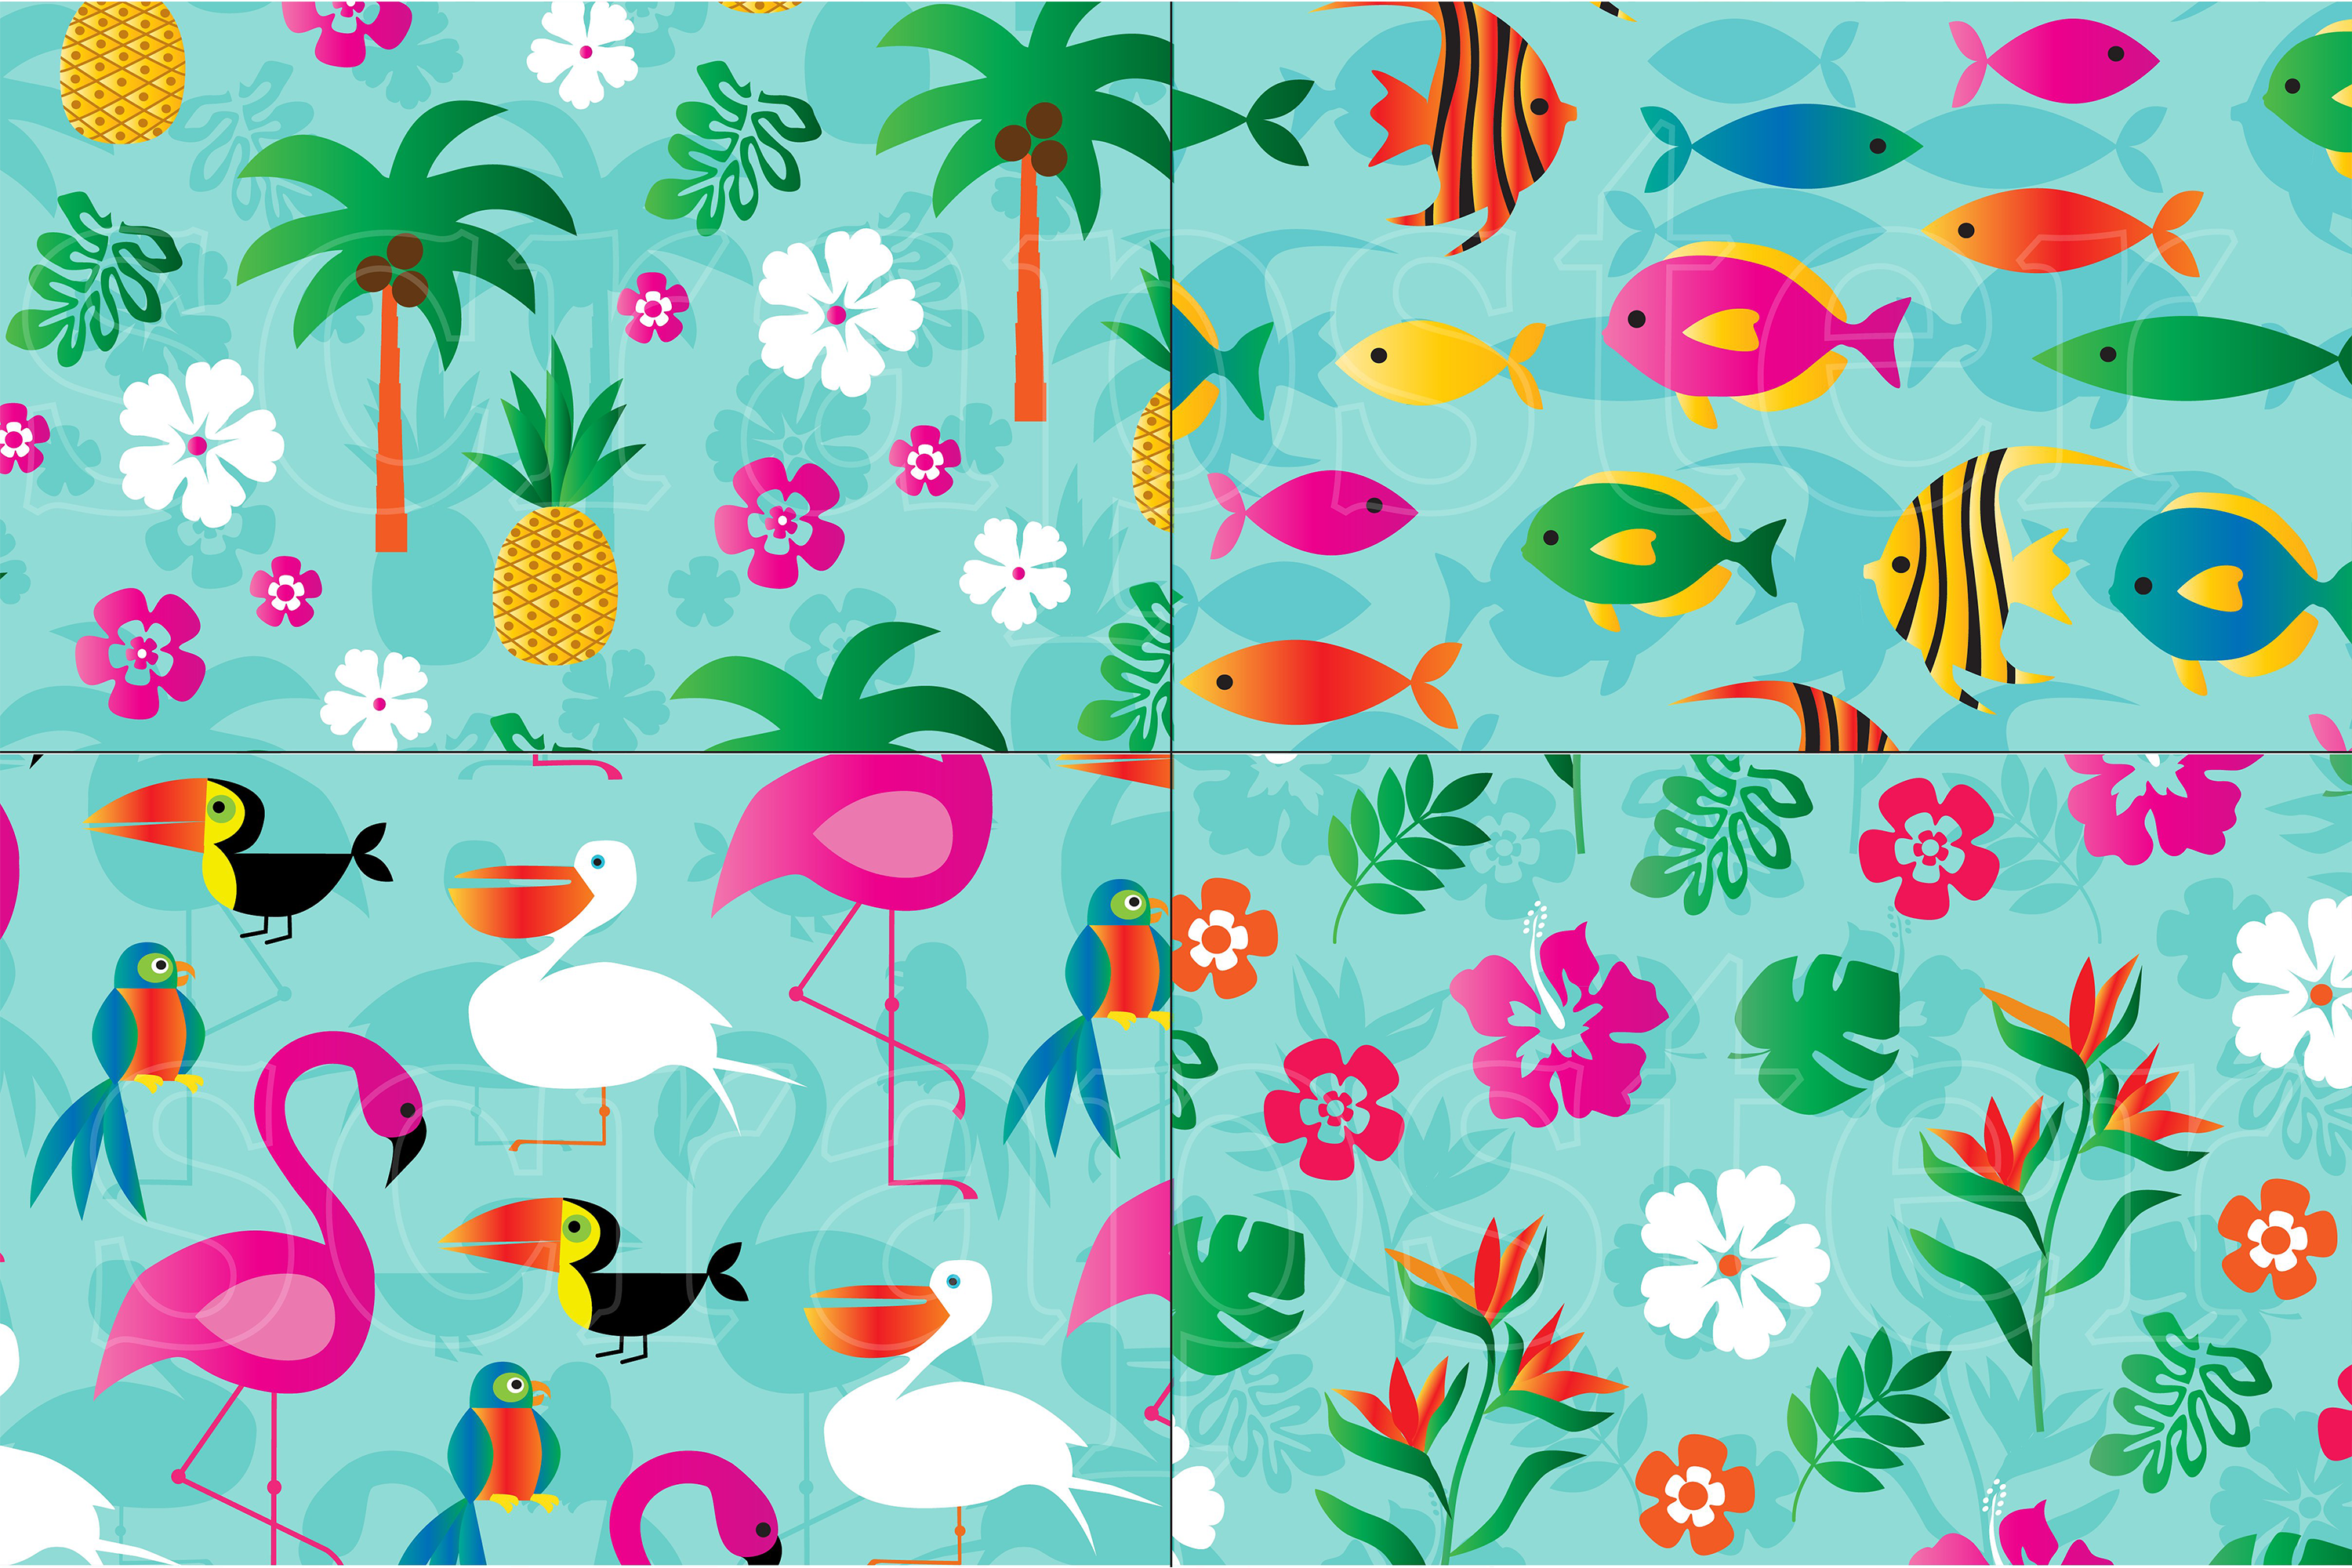 Flamingo & Pineapple Patterns example image 3